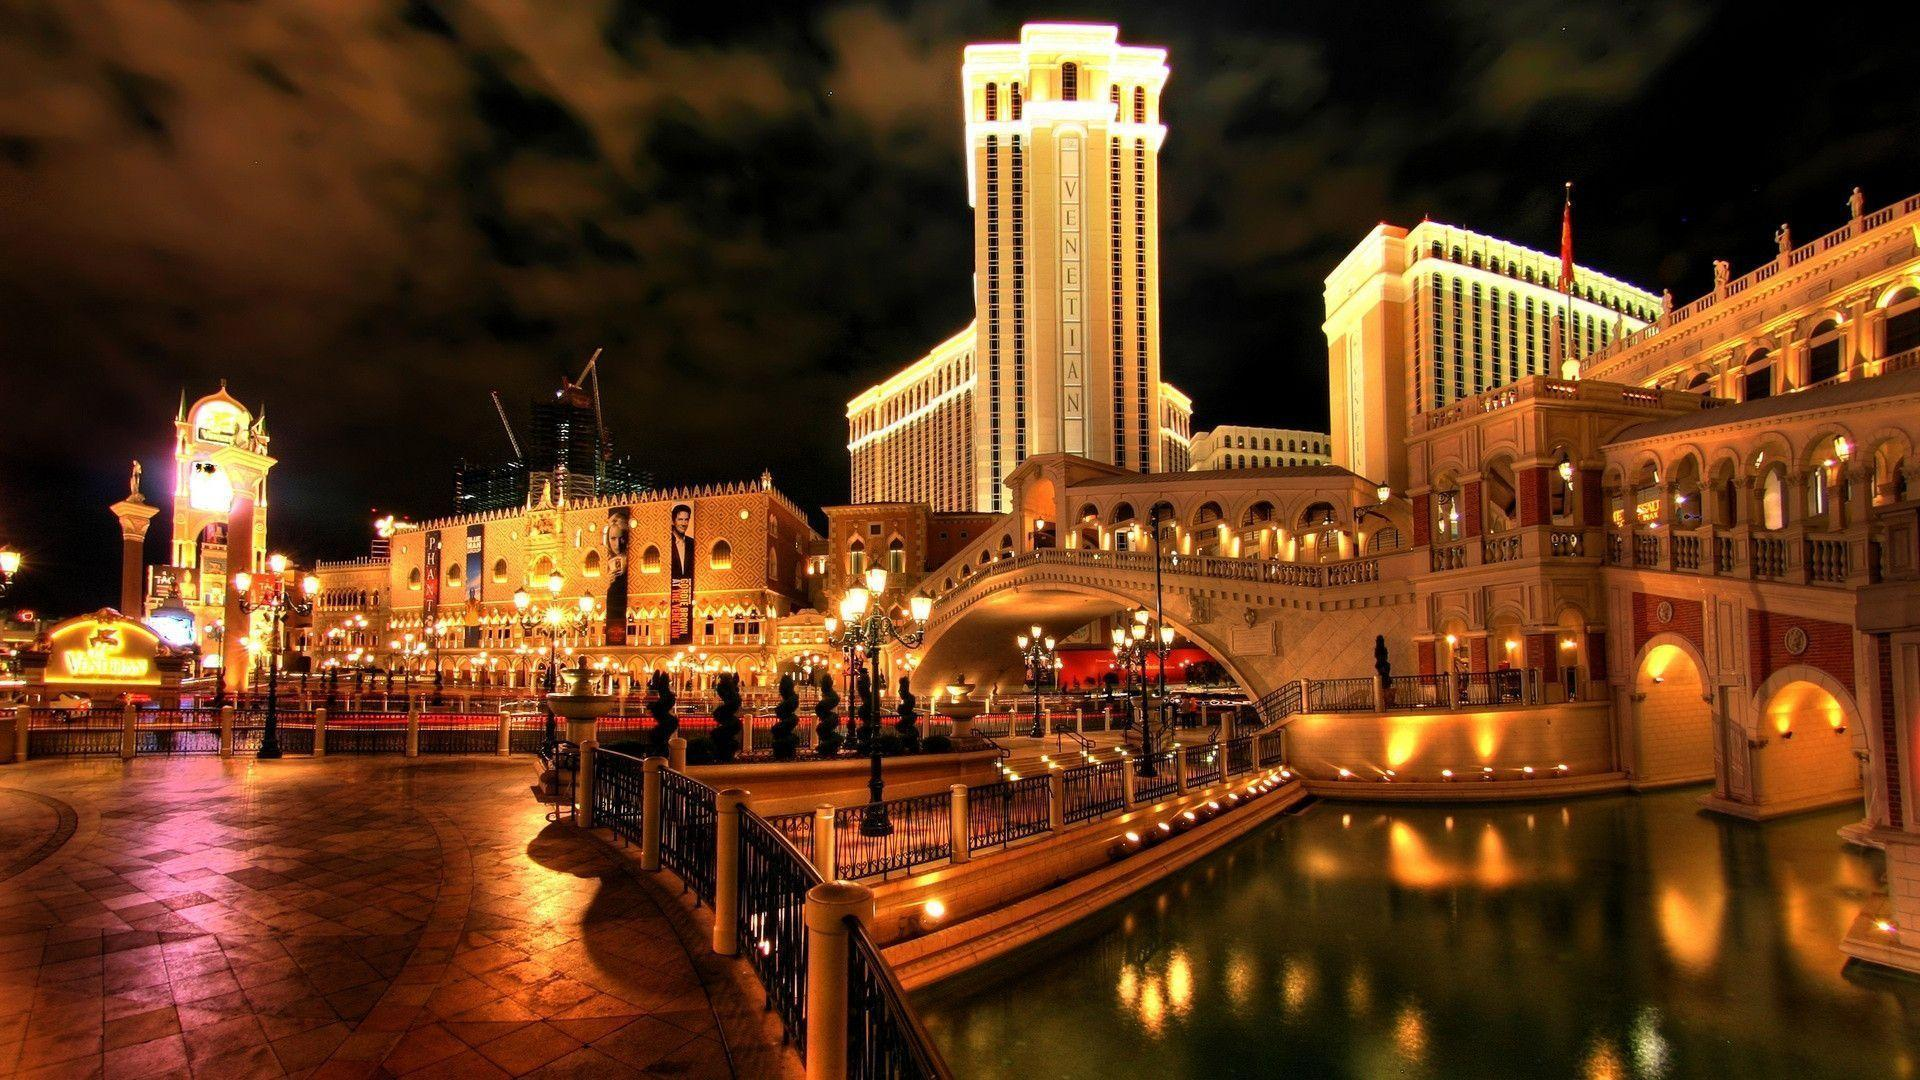 Evening Las Vegas City Wallpaper City Wallpaper Pictures to pin on ...